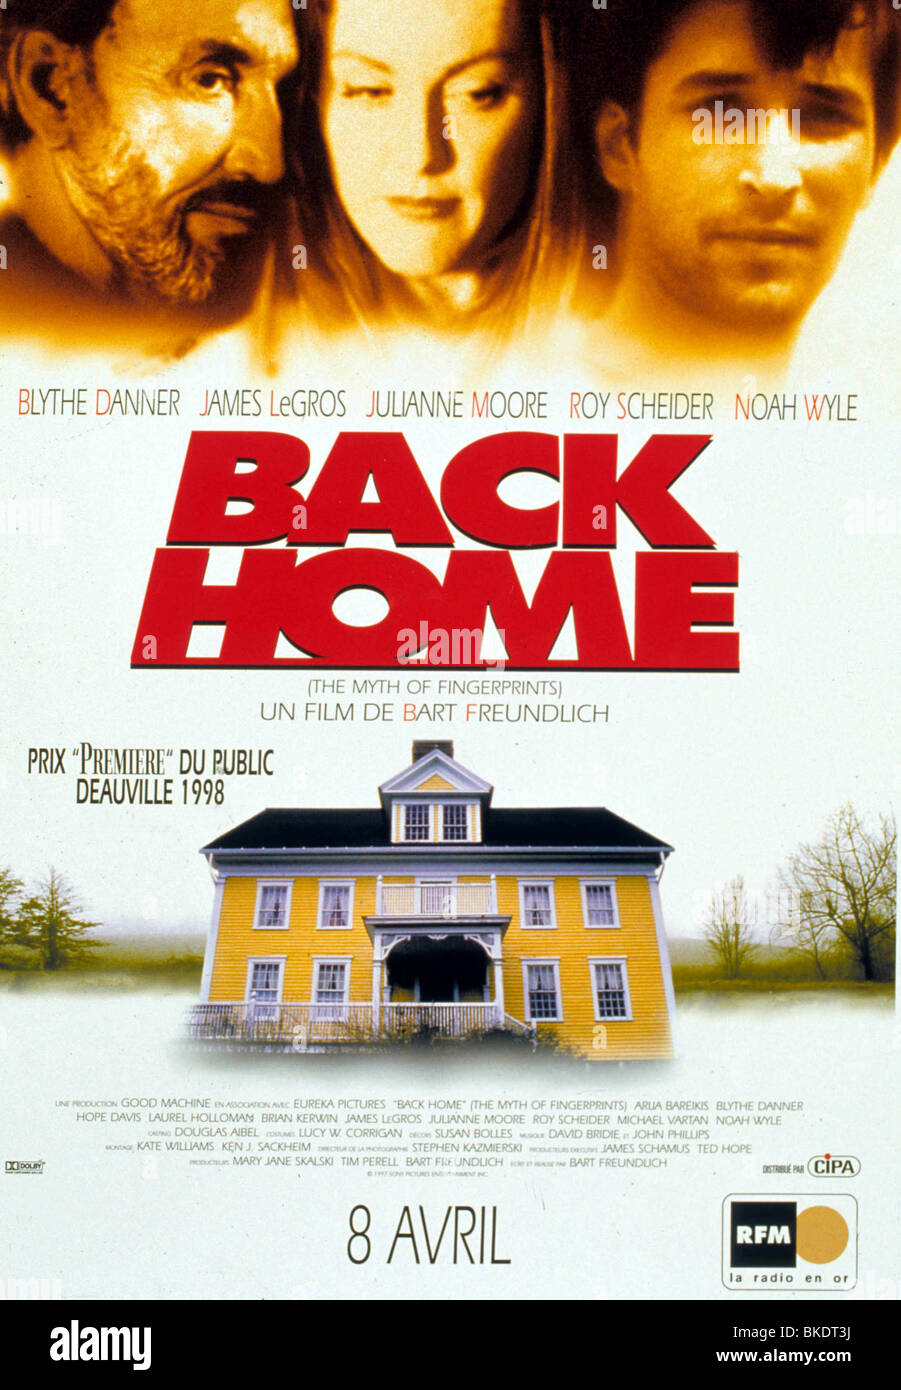 MYTH OF FINGERPRINTS (1997) BACK HOME (ALT) POSTER MYFN 021 - Stock Image